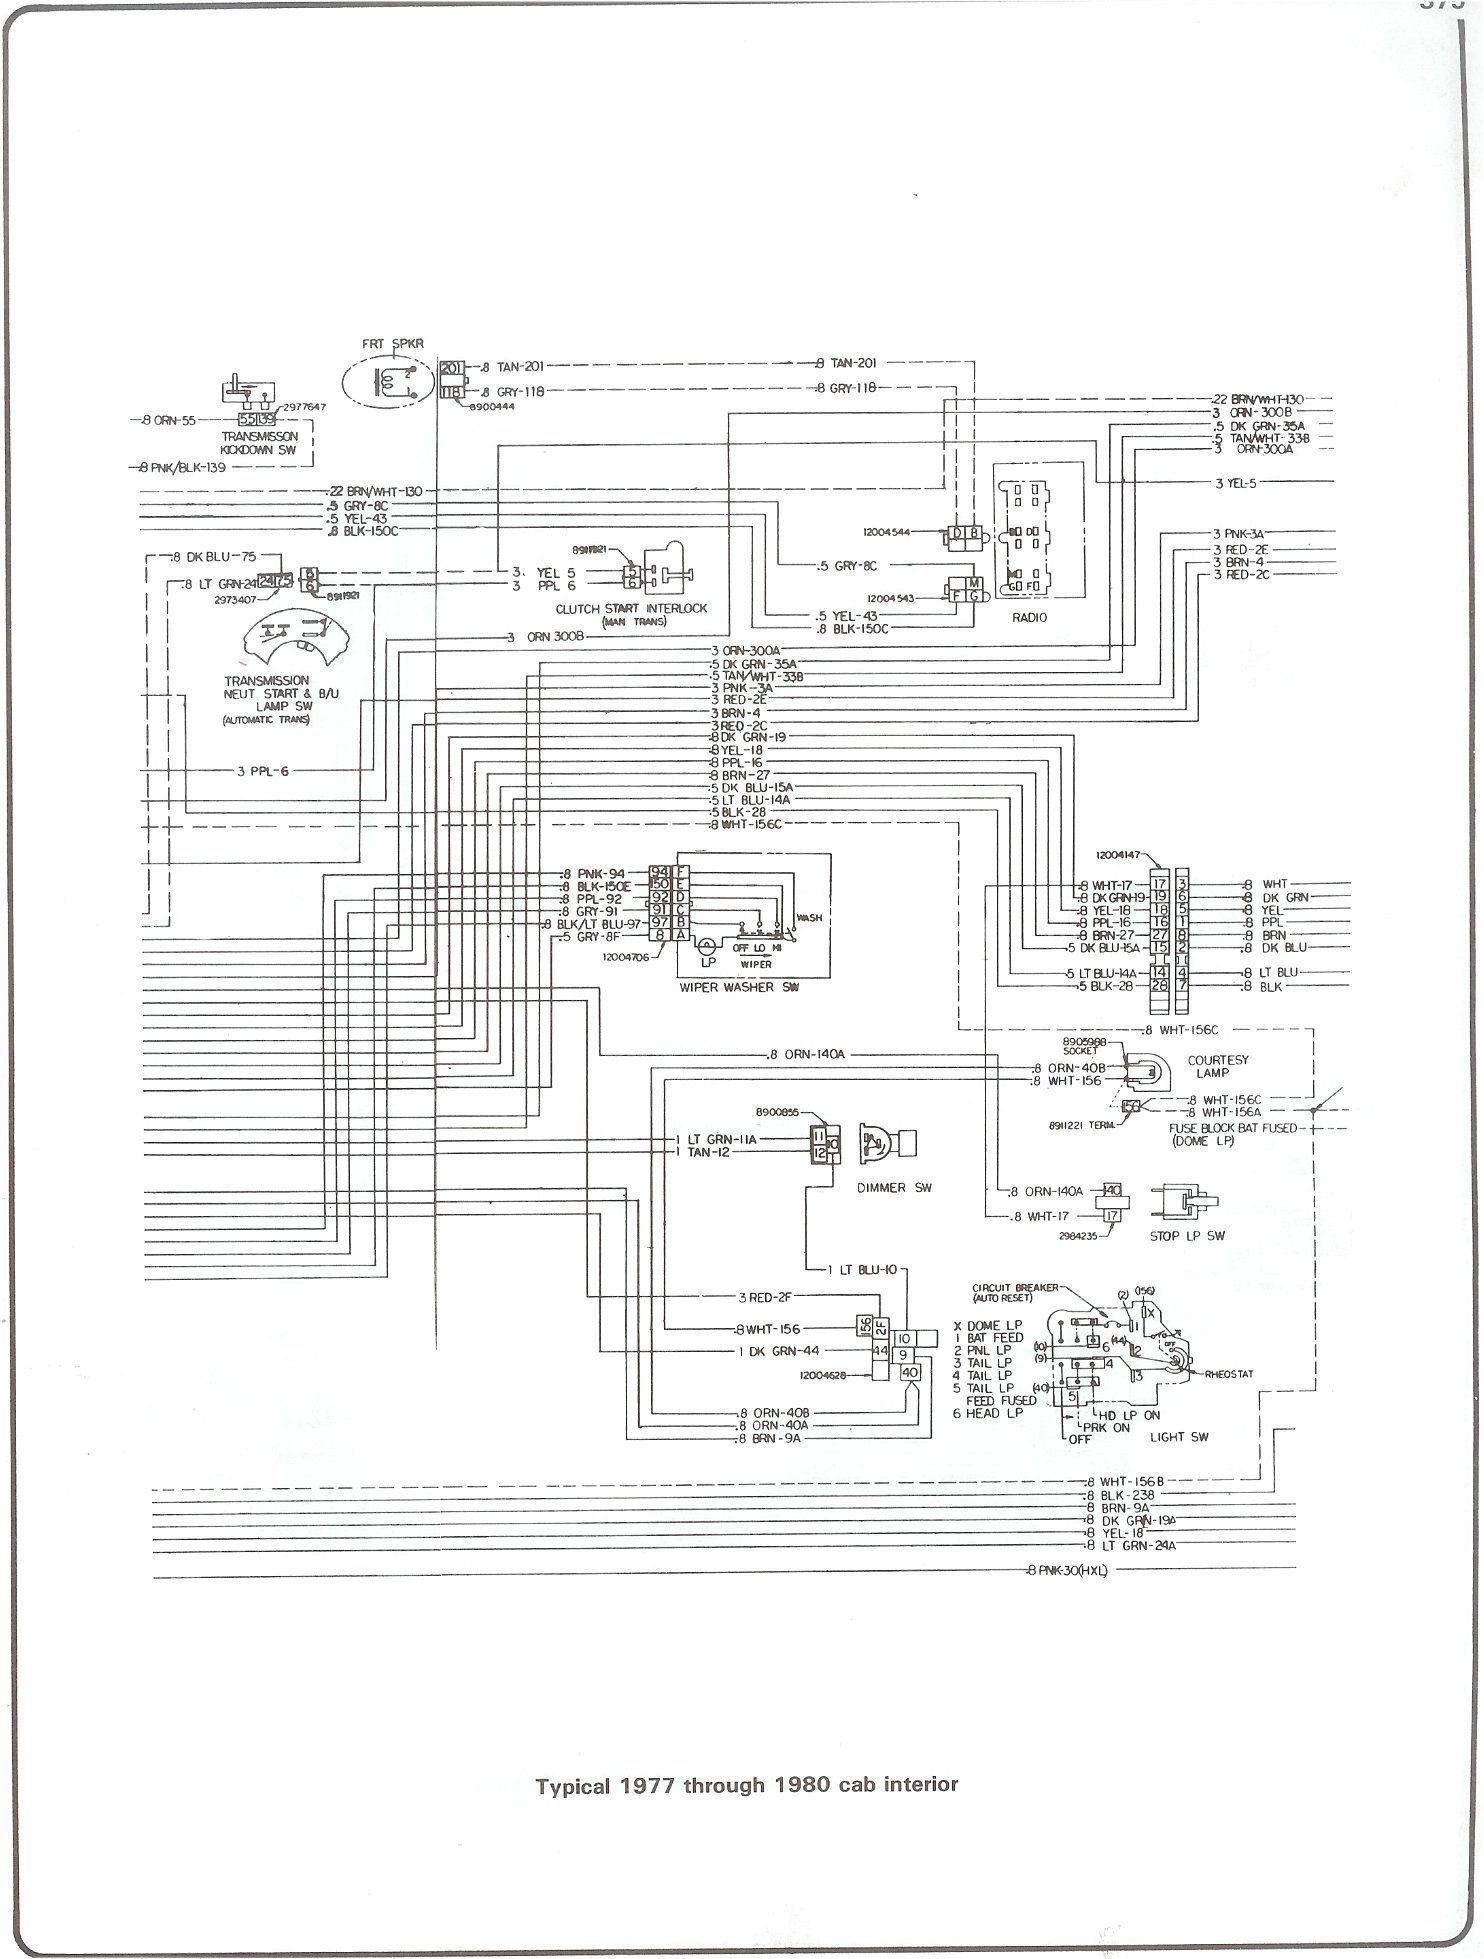 77 80_cab_inter complete 73 87 wiring diagrams 1975 c10 wiring diagram at cos-gaming.co